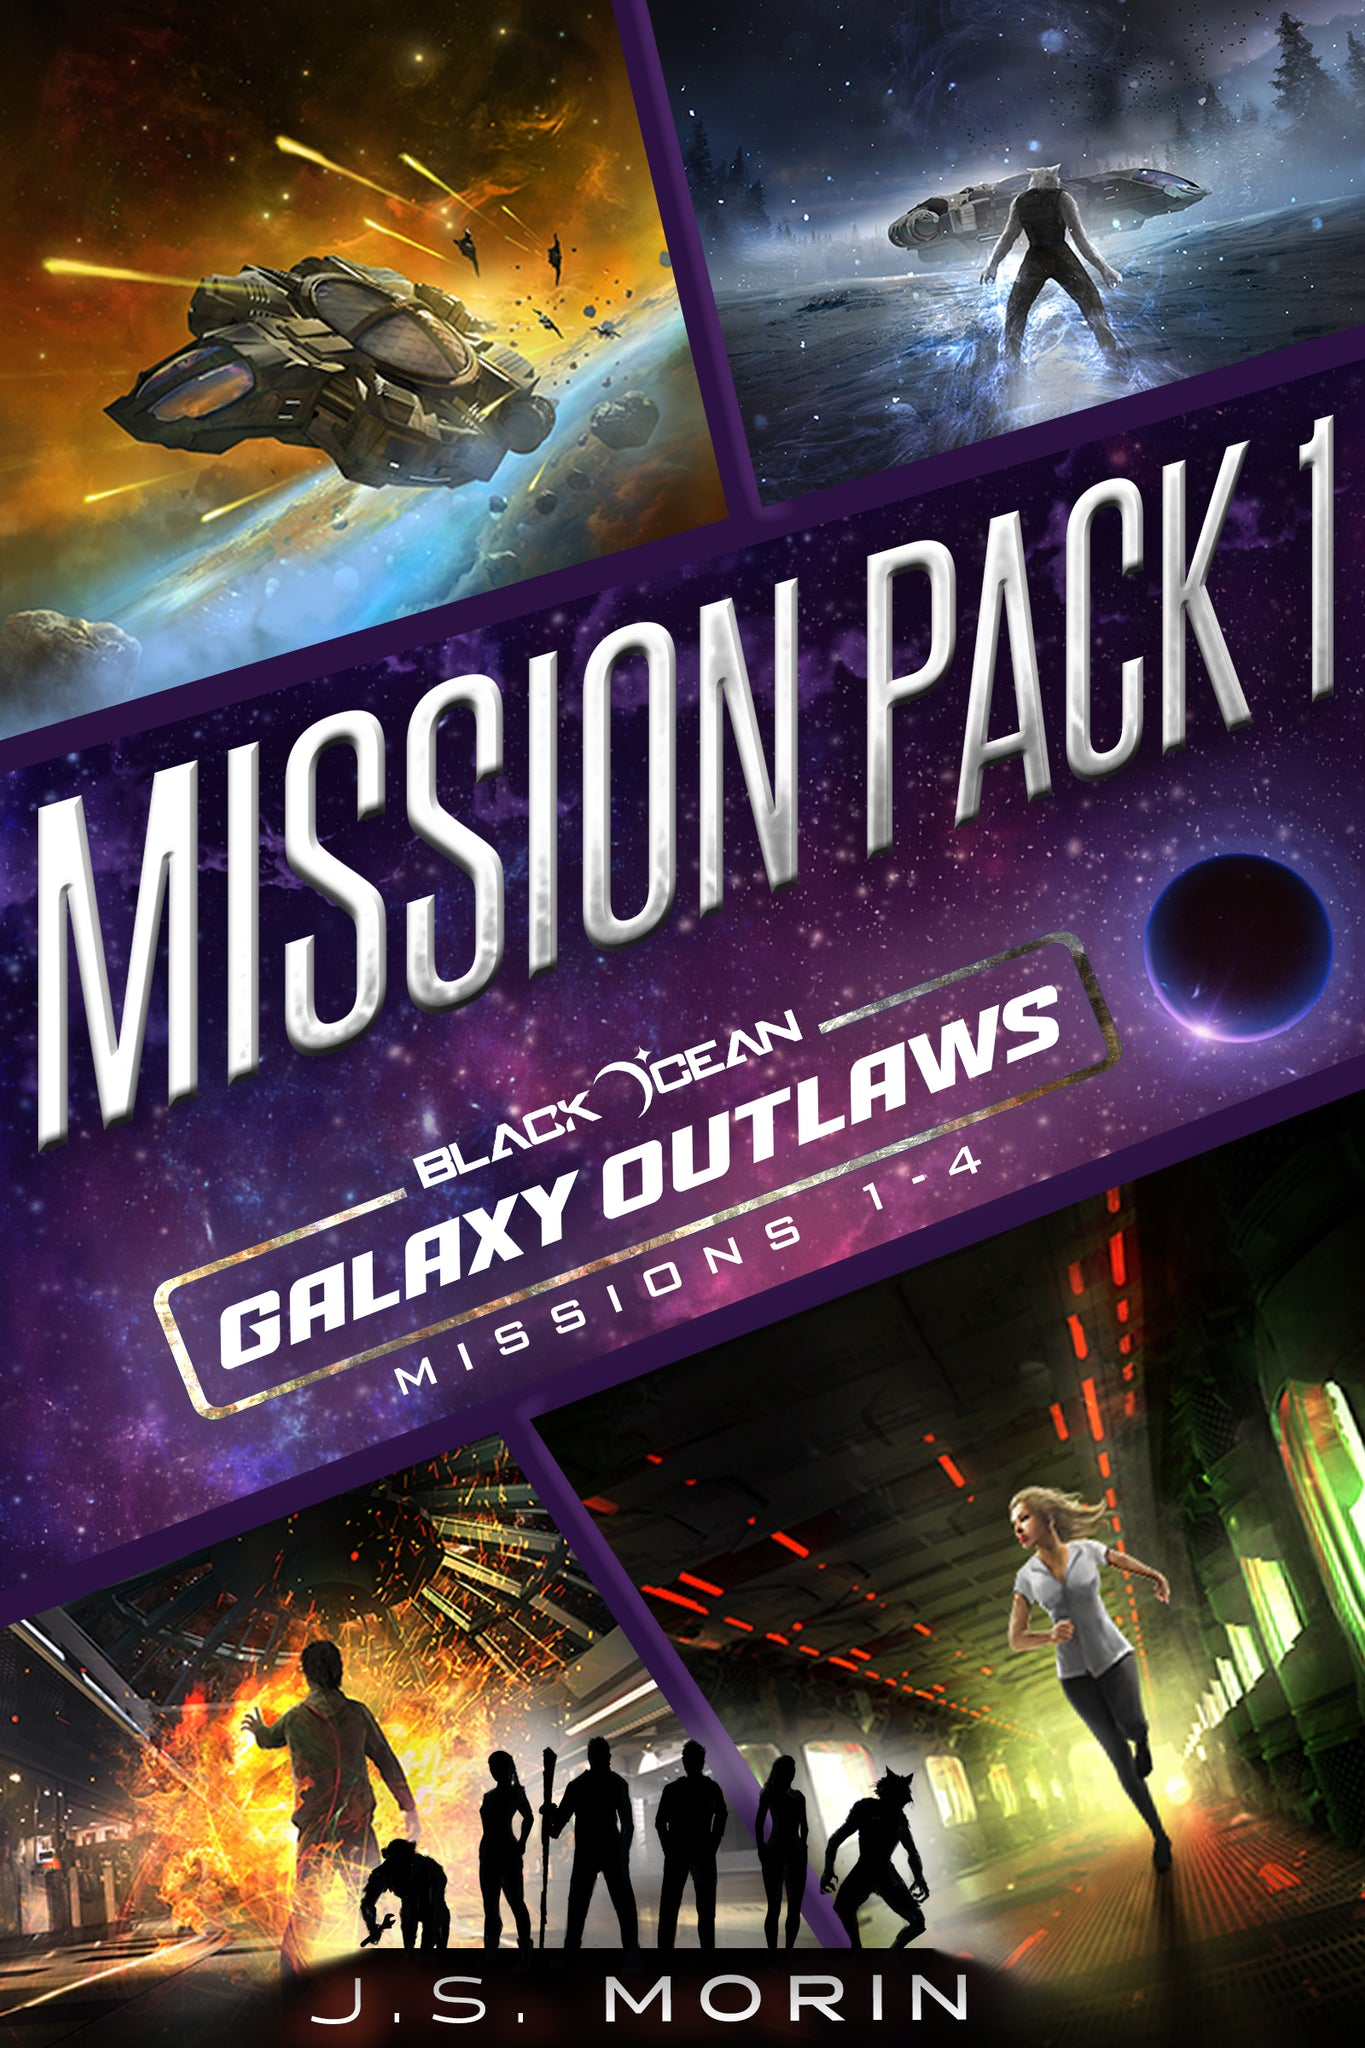 Mission Pack 1, Black Ocean: Galaxy Outlaws Missions 1-4